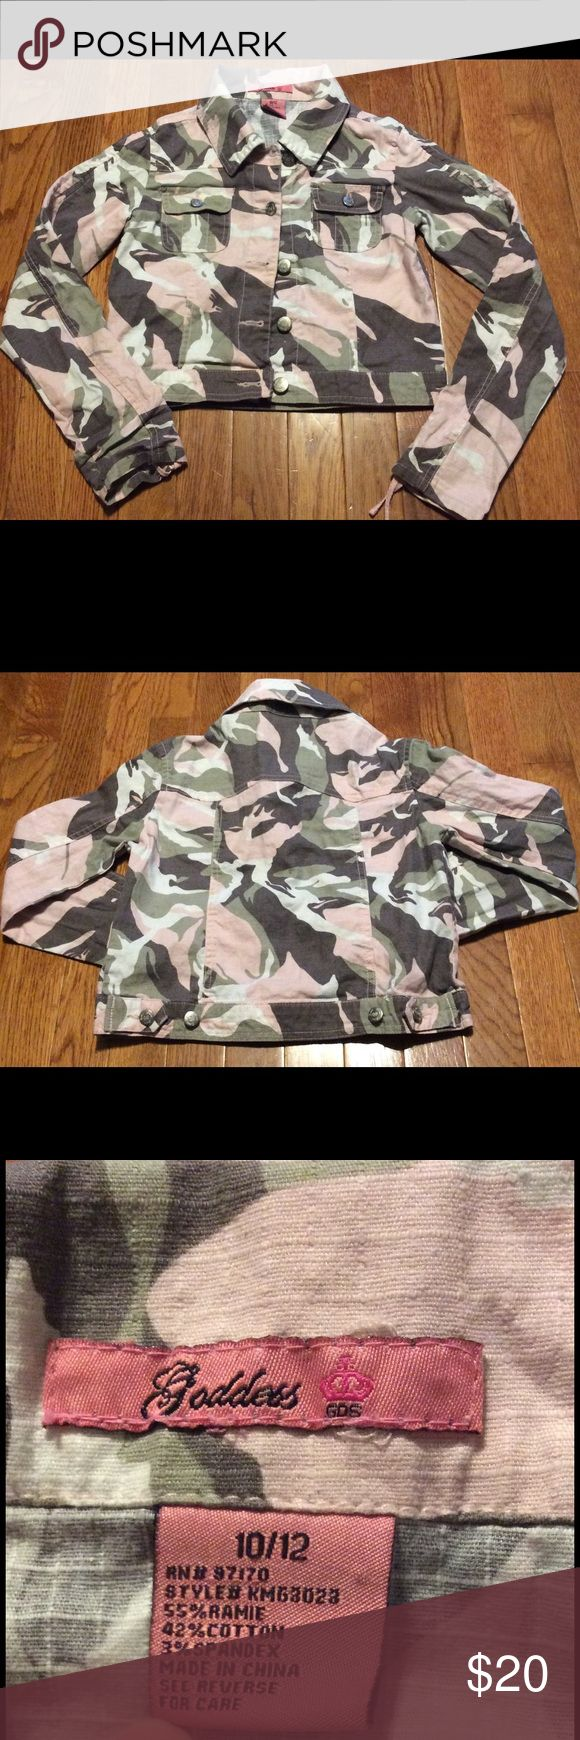 Cropped Pink Camo Jacket 10/12 Gently used, in good condition Goddess Jackets & Coats Jean Jackets